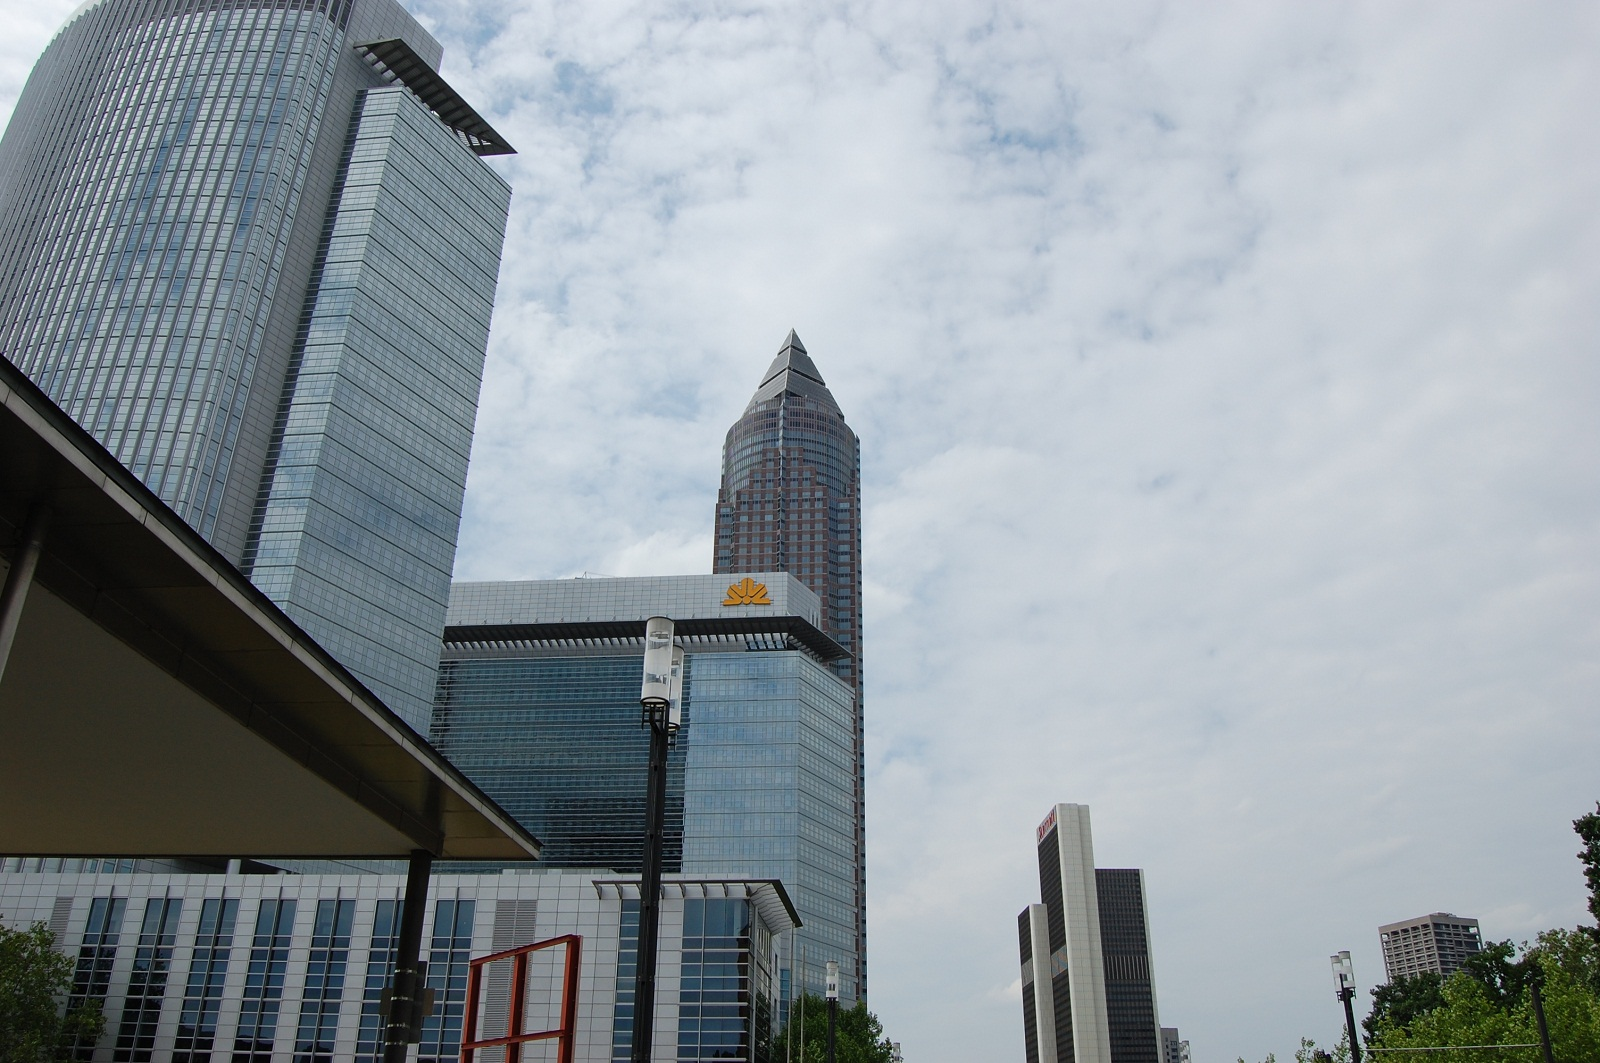 Frankfurt Architecture, Germany, Skyscrapers (4)